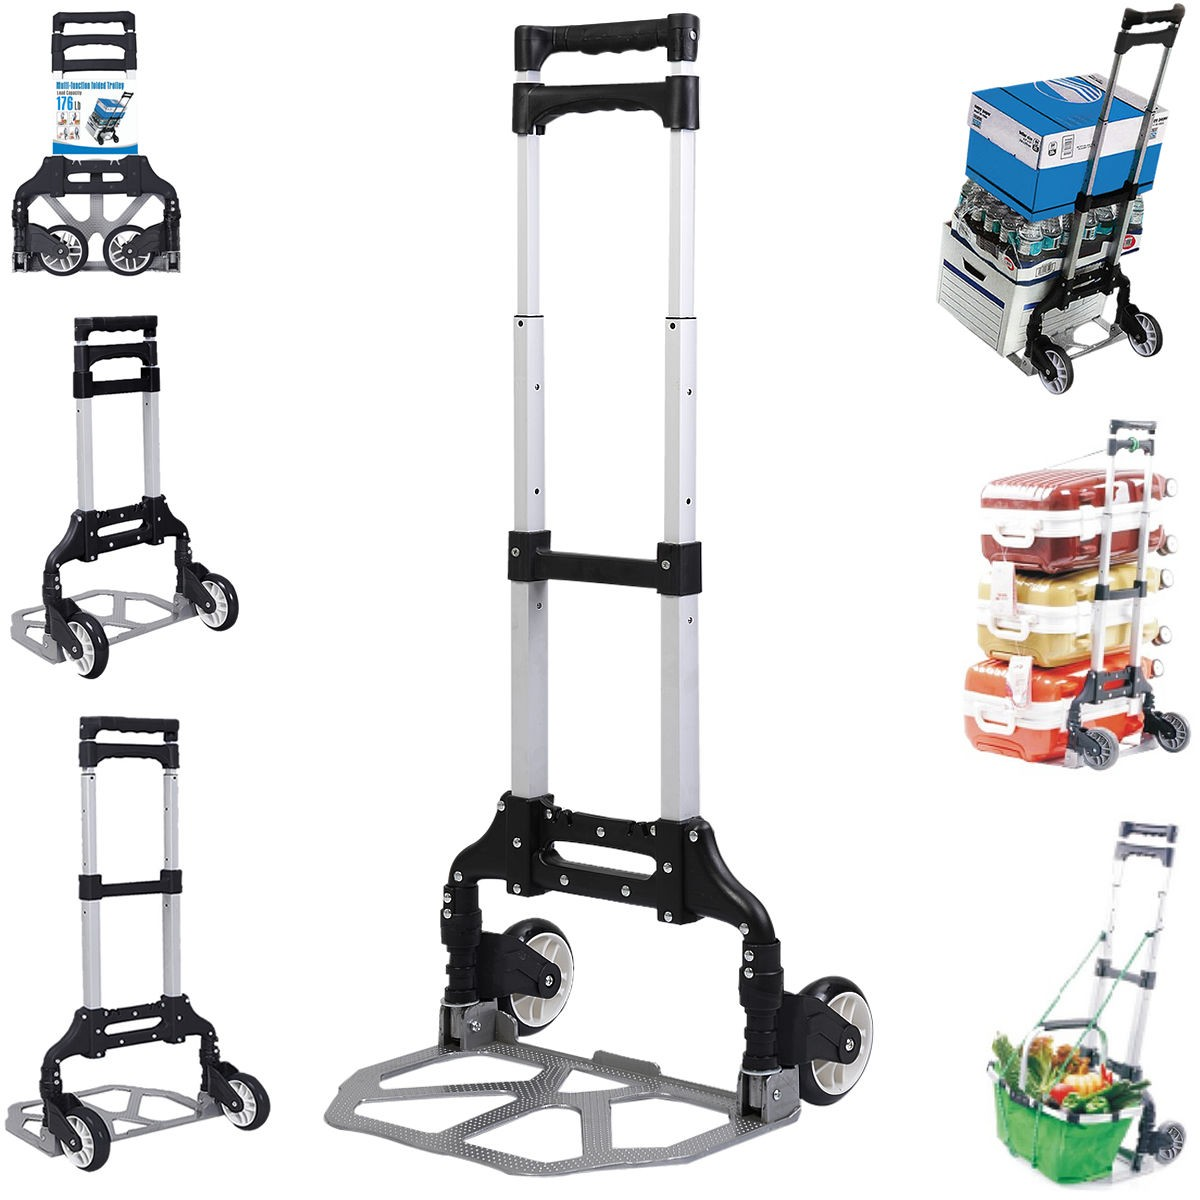 Apontus 170 lb Capacity Aluminum Folding Hand Truck Dolly Cart